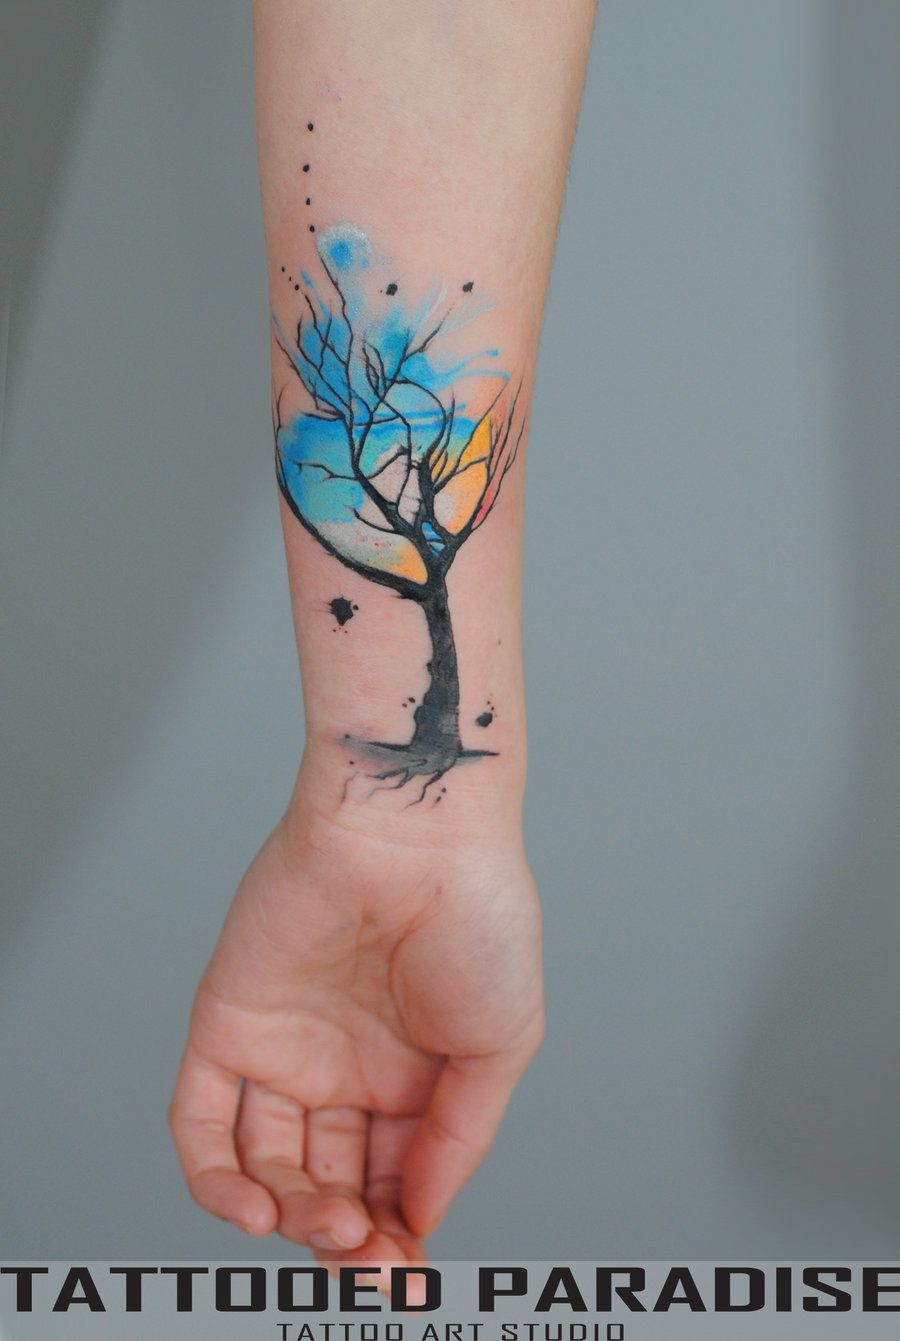 Big tattoo cover up ideas tree watercolor by dopeindulgenceviantart on deviantart